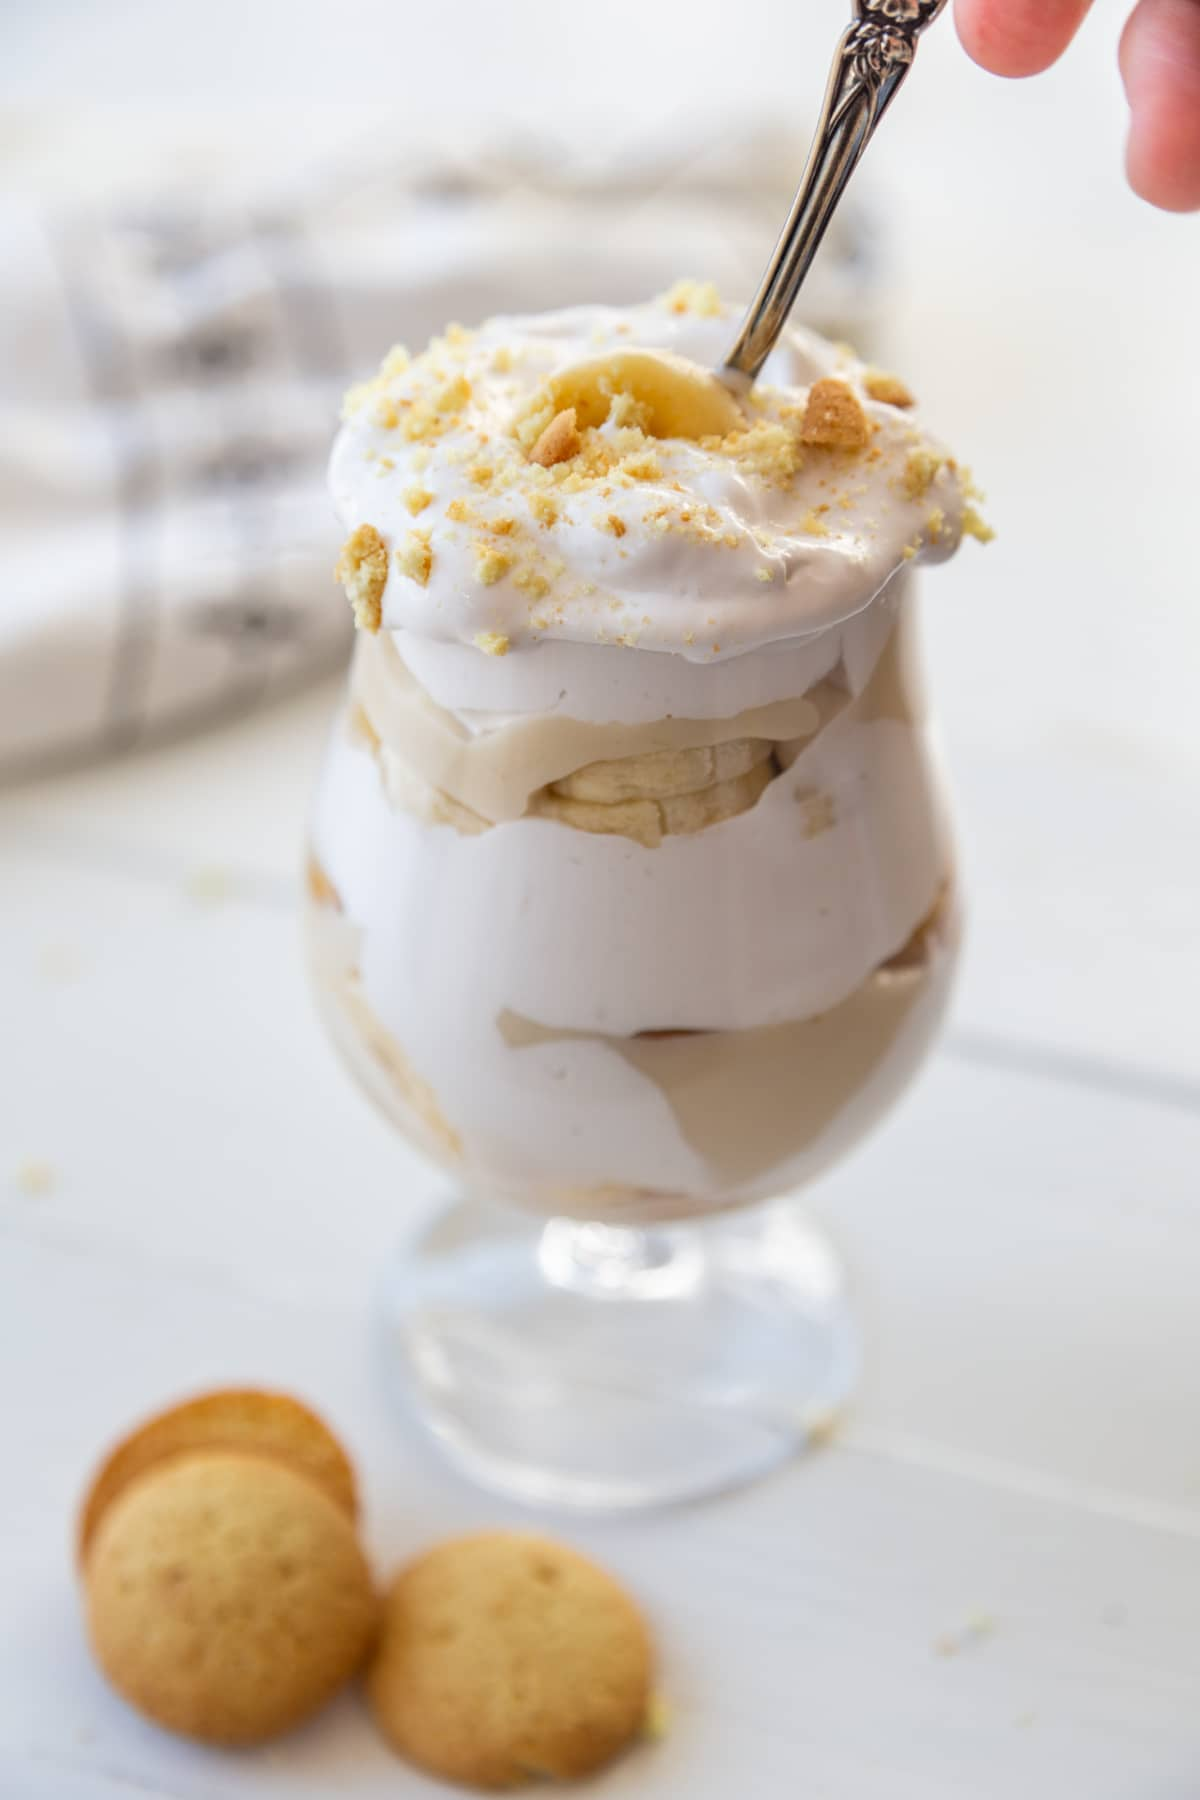 A hand inserting a silver spoon into a glass of banana pudding with 3 vanilla wafers next to the glass.